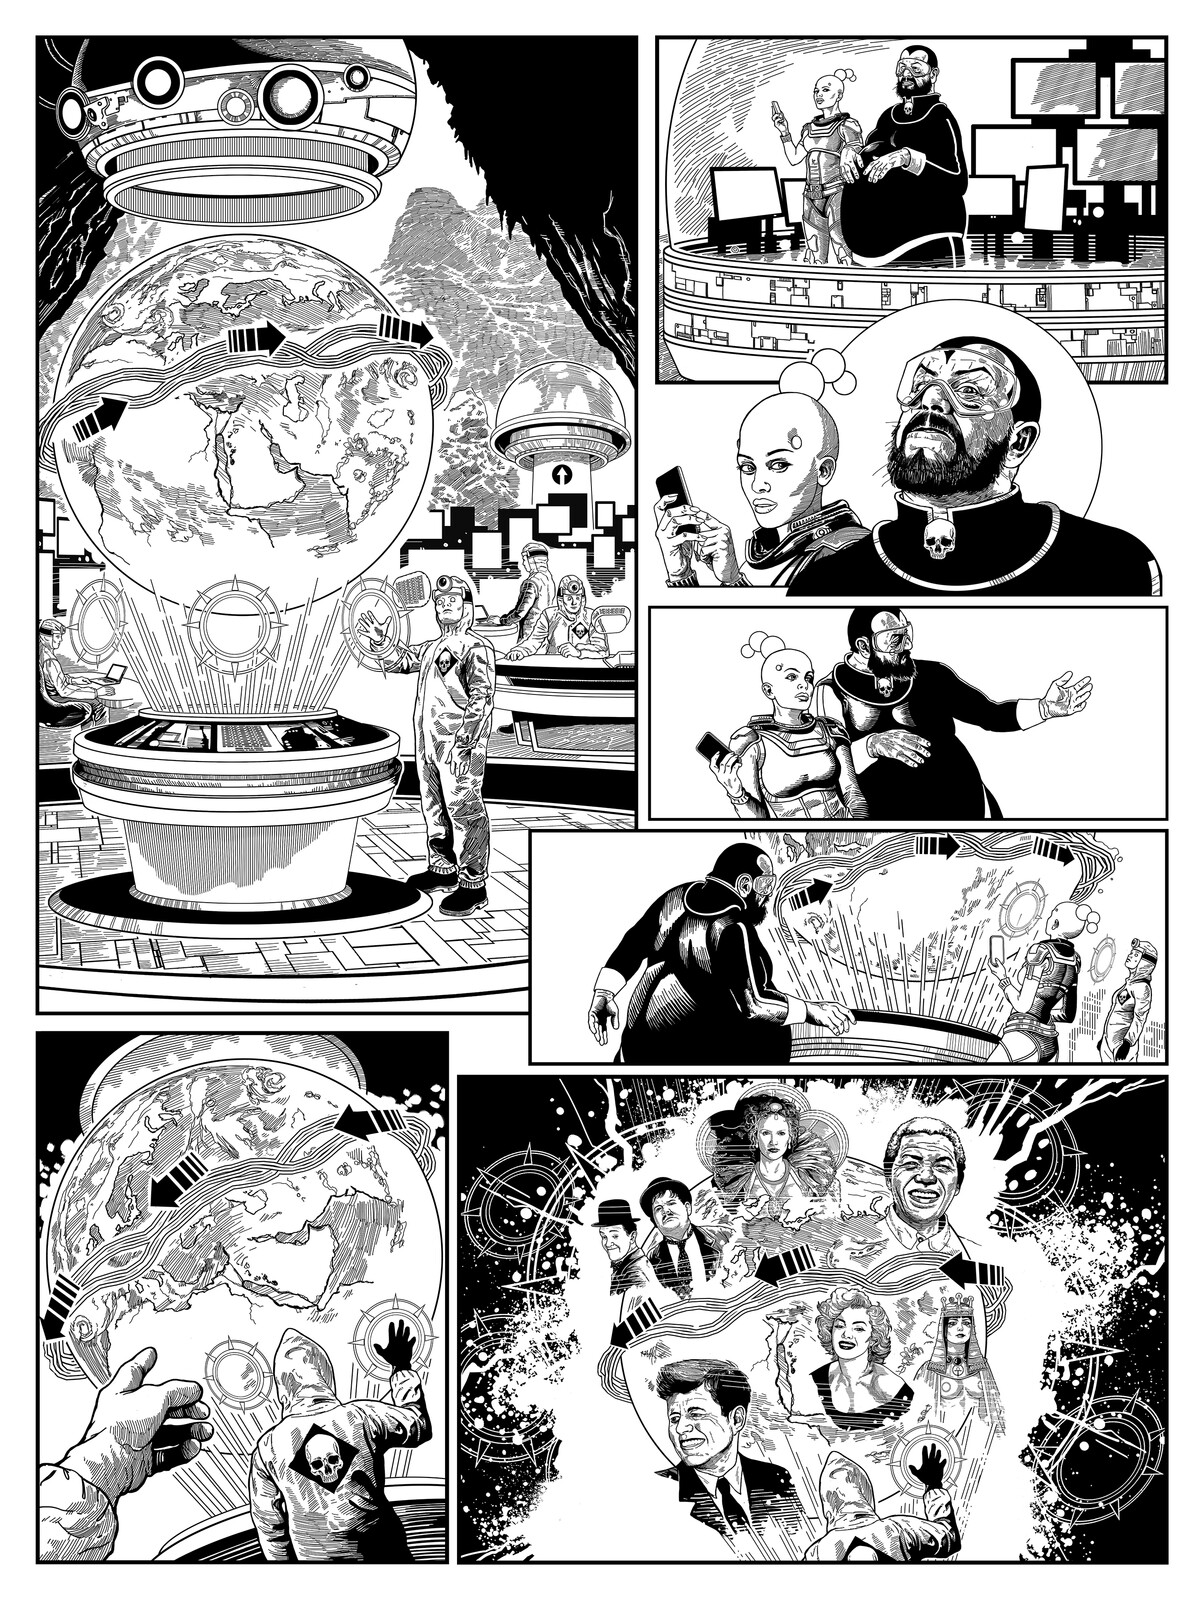 Page 1 The Collector / Issue 2 of The 77 B&W